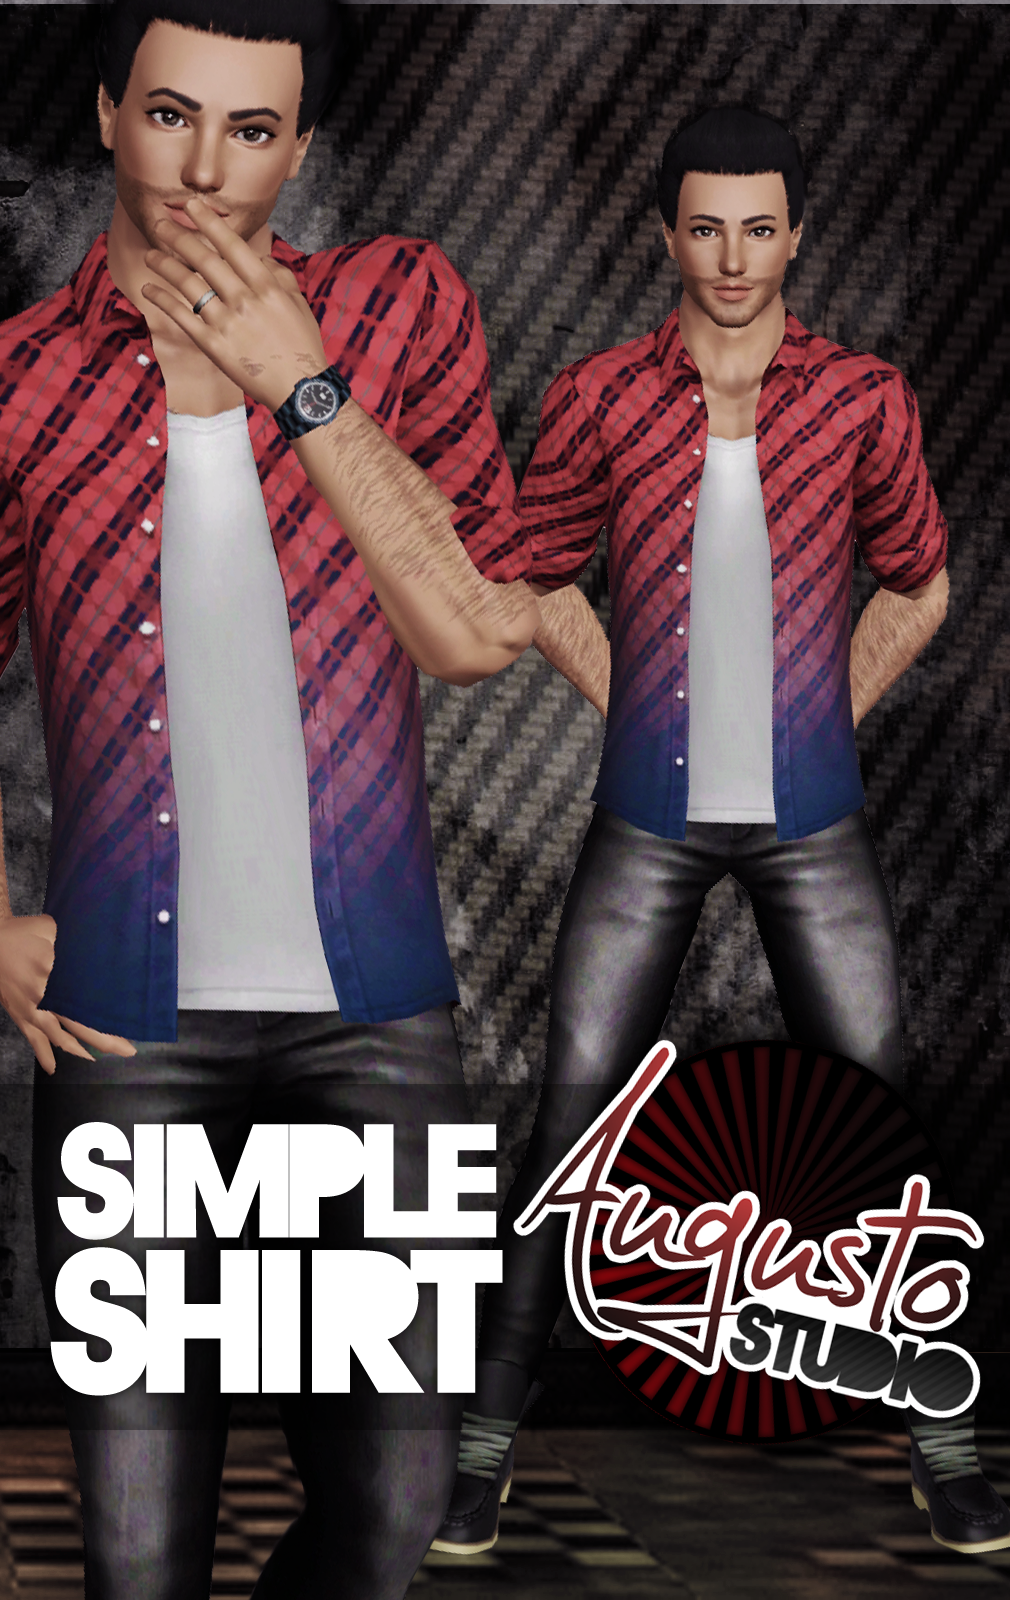 SIMPLE SHIRT by Augusto